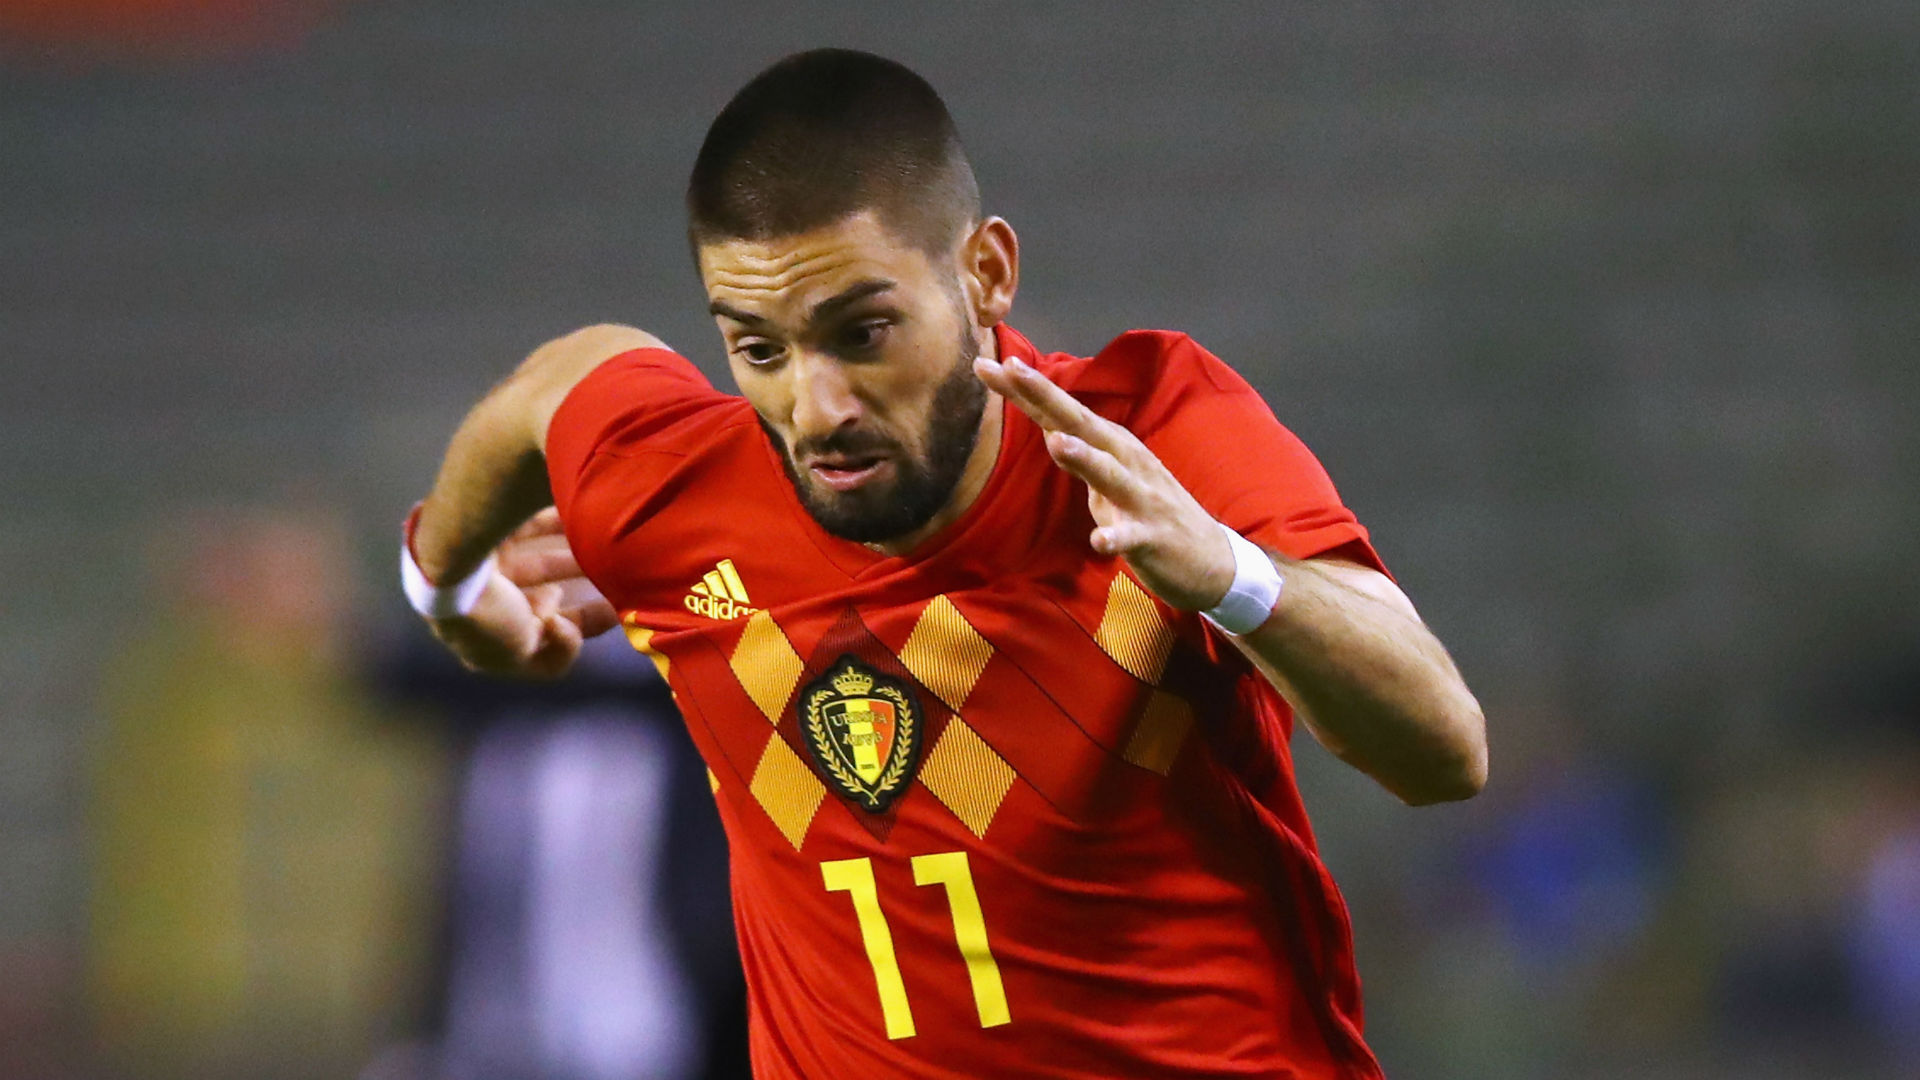 Carrasco accused of deliberate booking and slammed for trying to force move